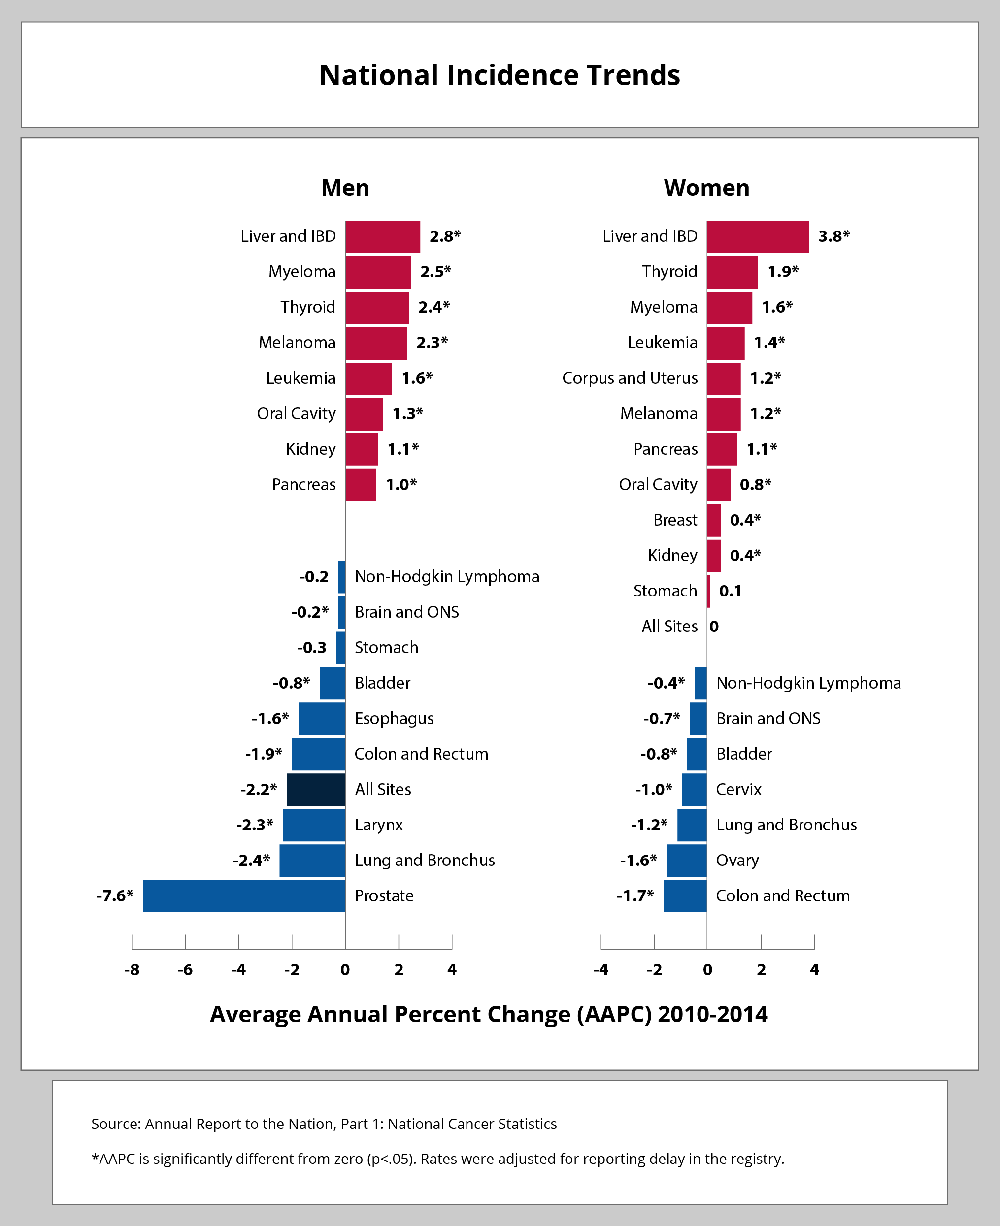 Average Annual Percent Change (AAPC) 2010-2014